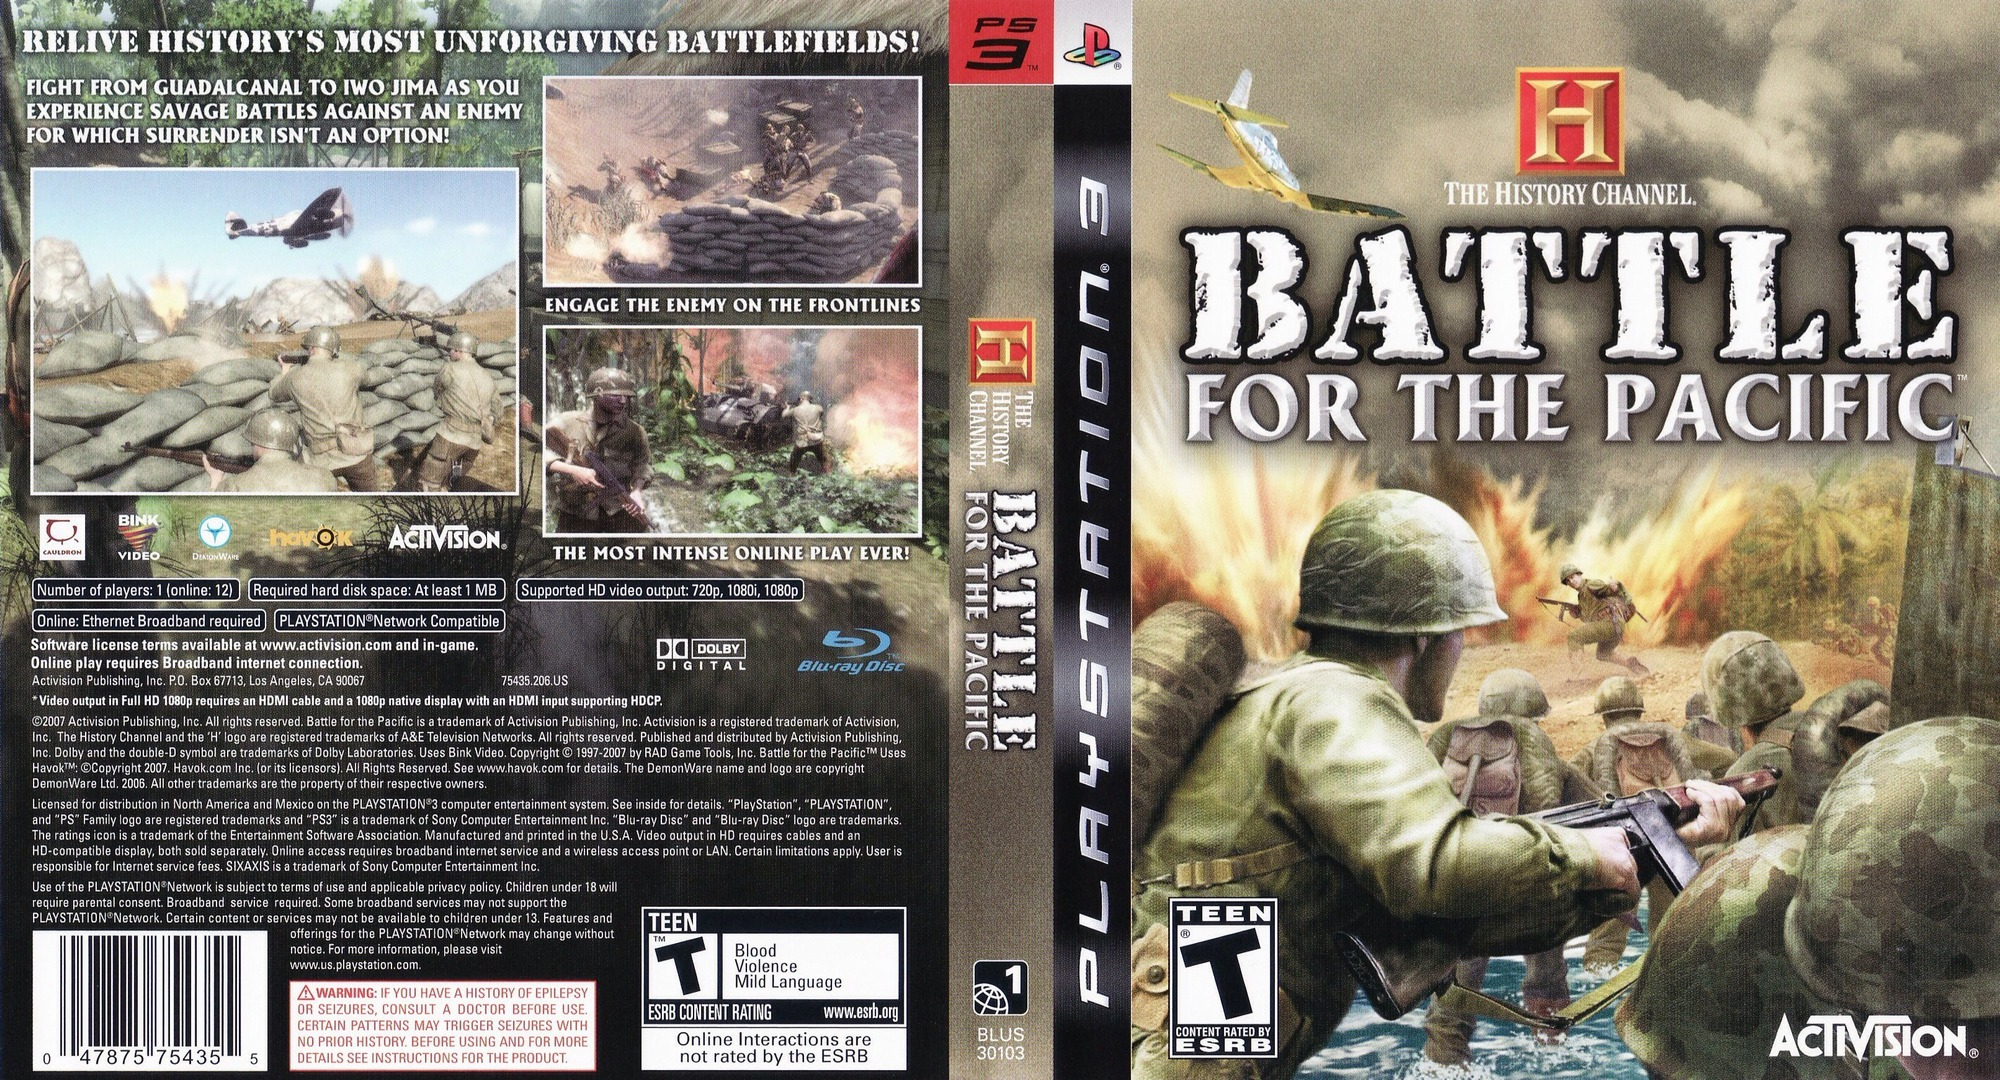 History Channel: Battle for the Pacific PS3 coverfullHQ (BLUS30103)